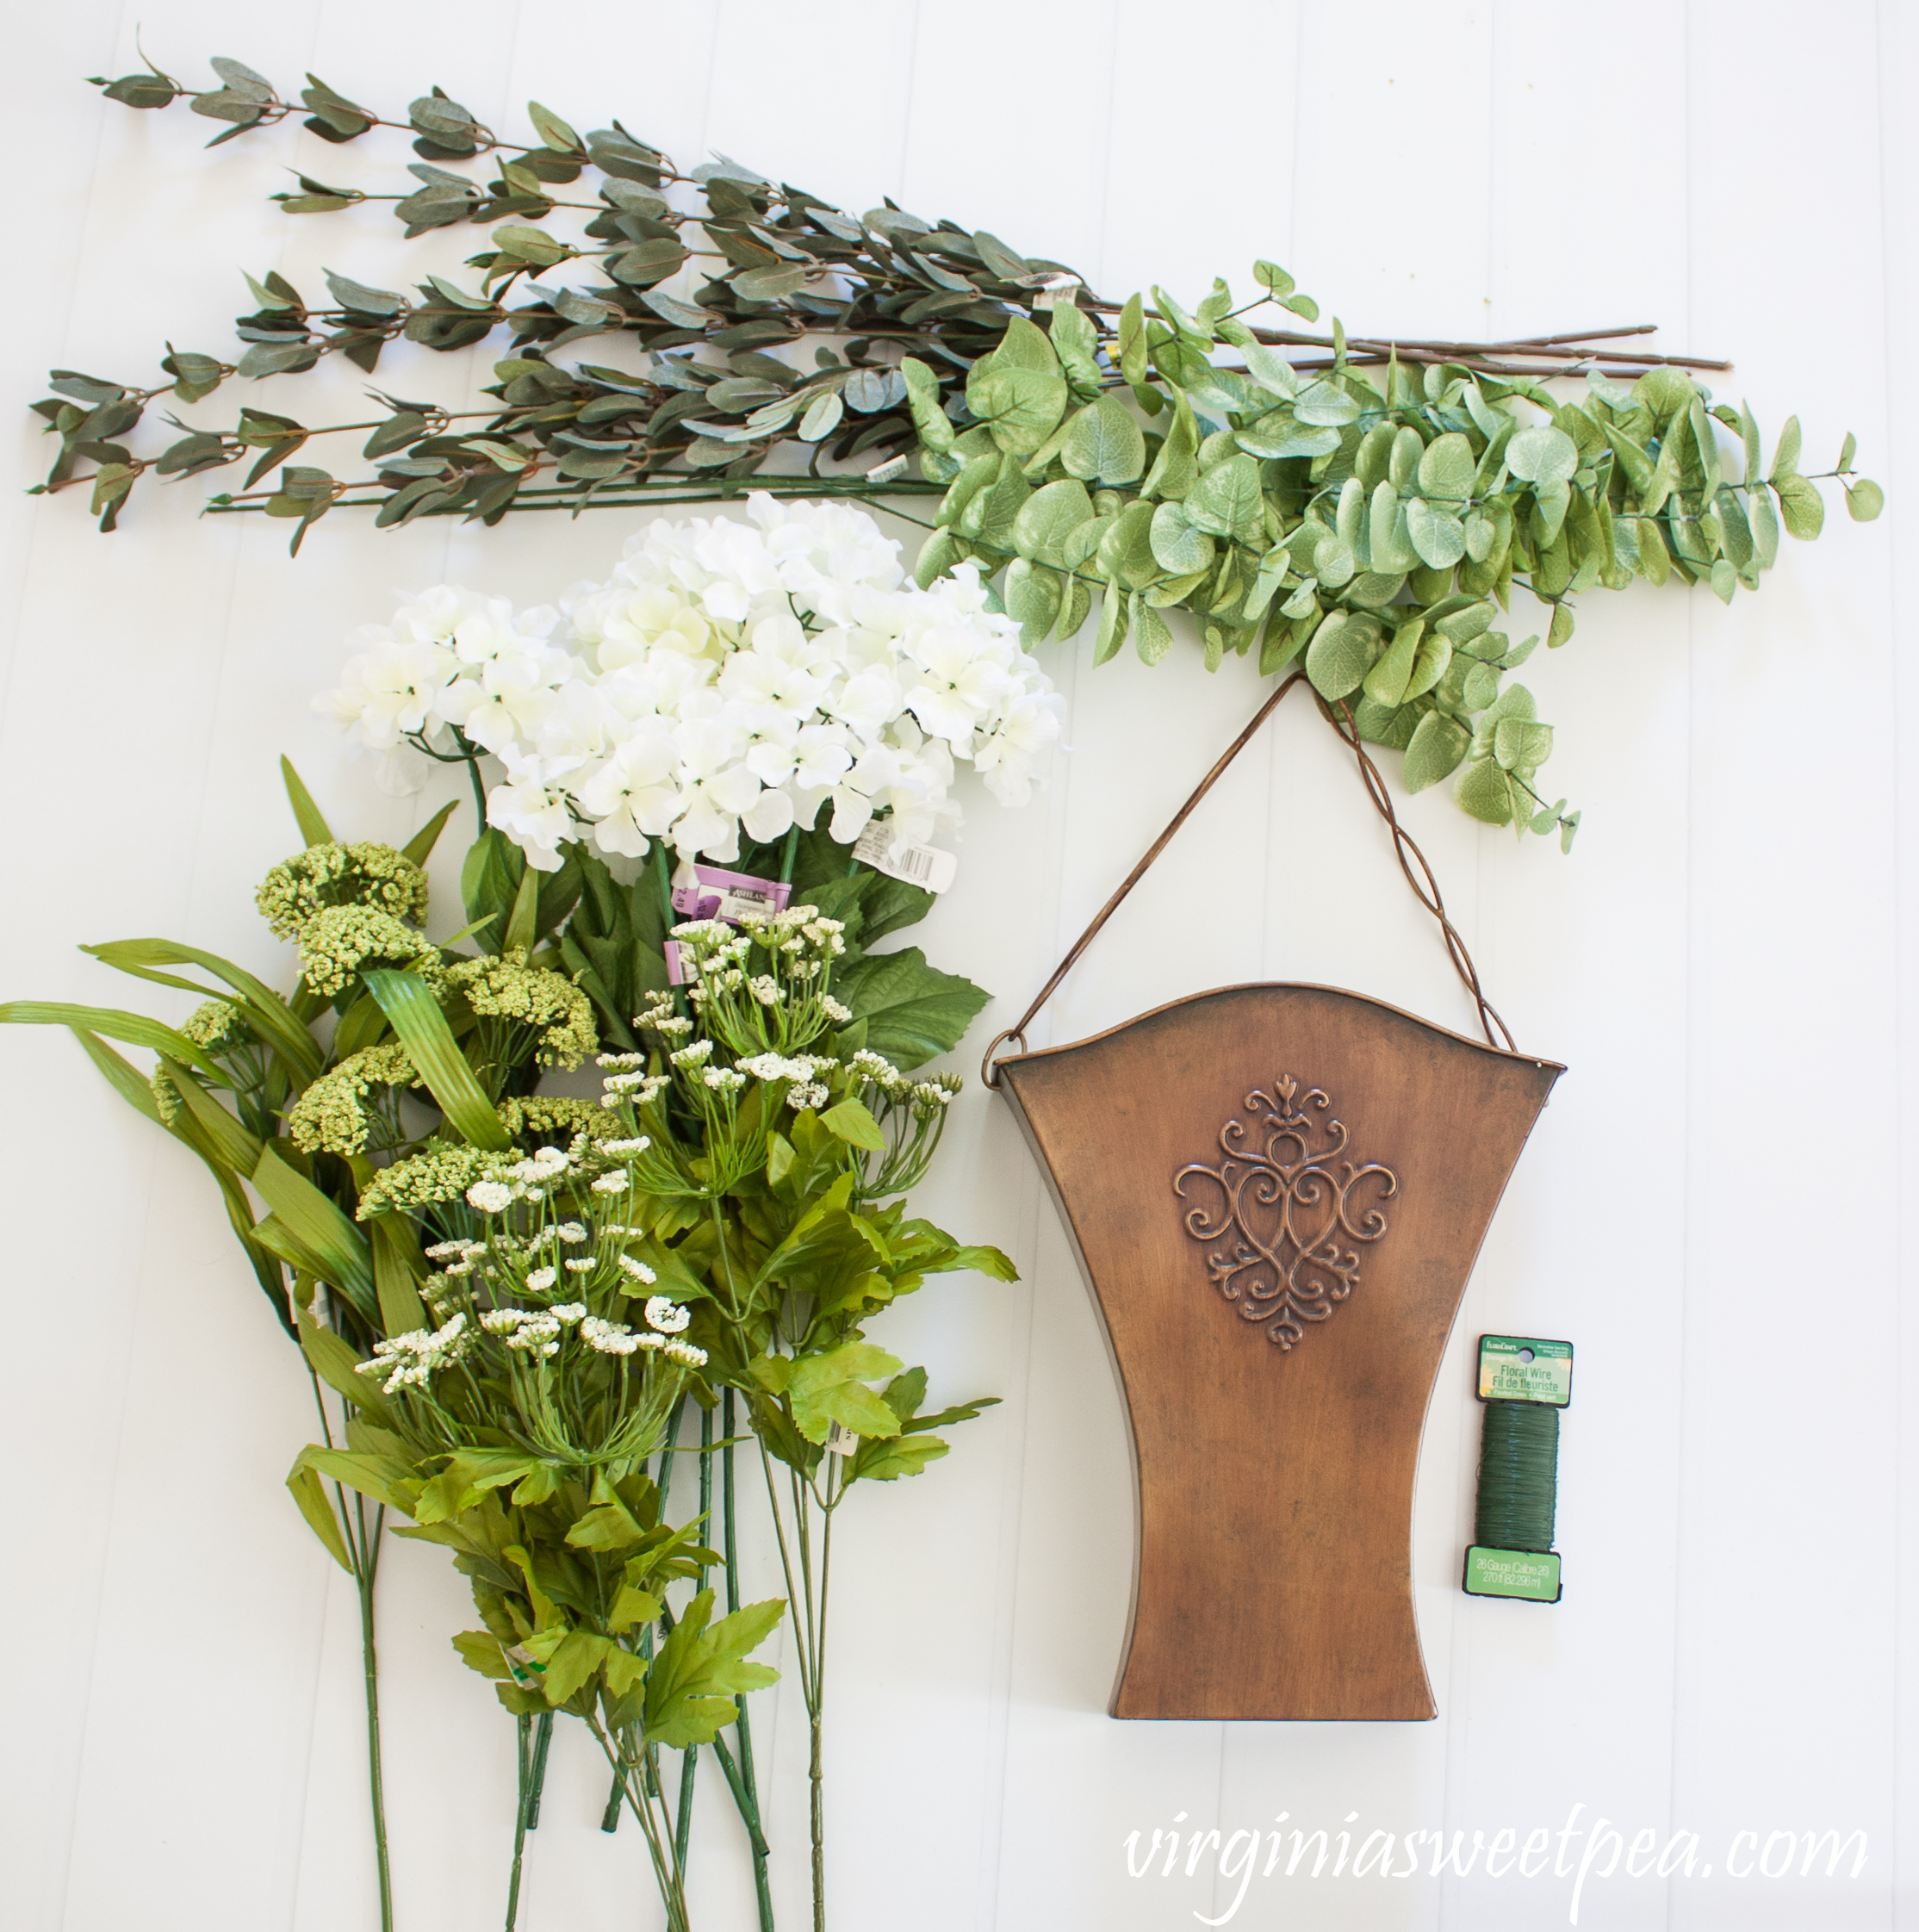 Supplies to make a hanging spring floral arrangement